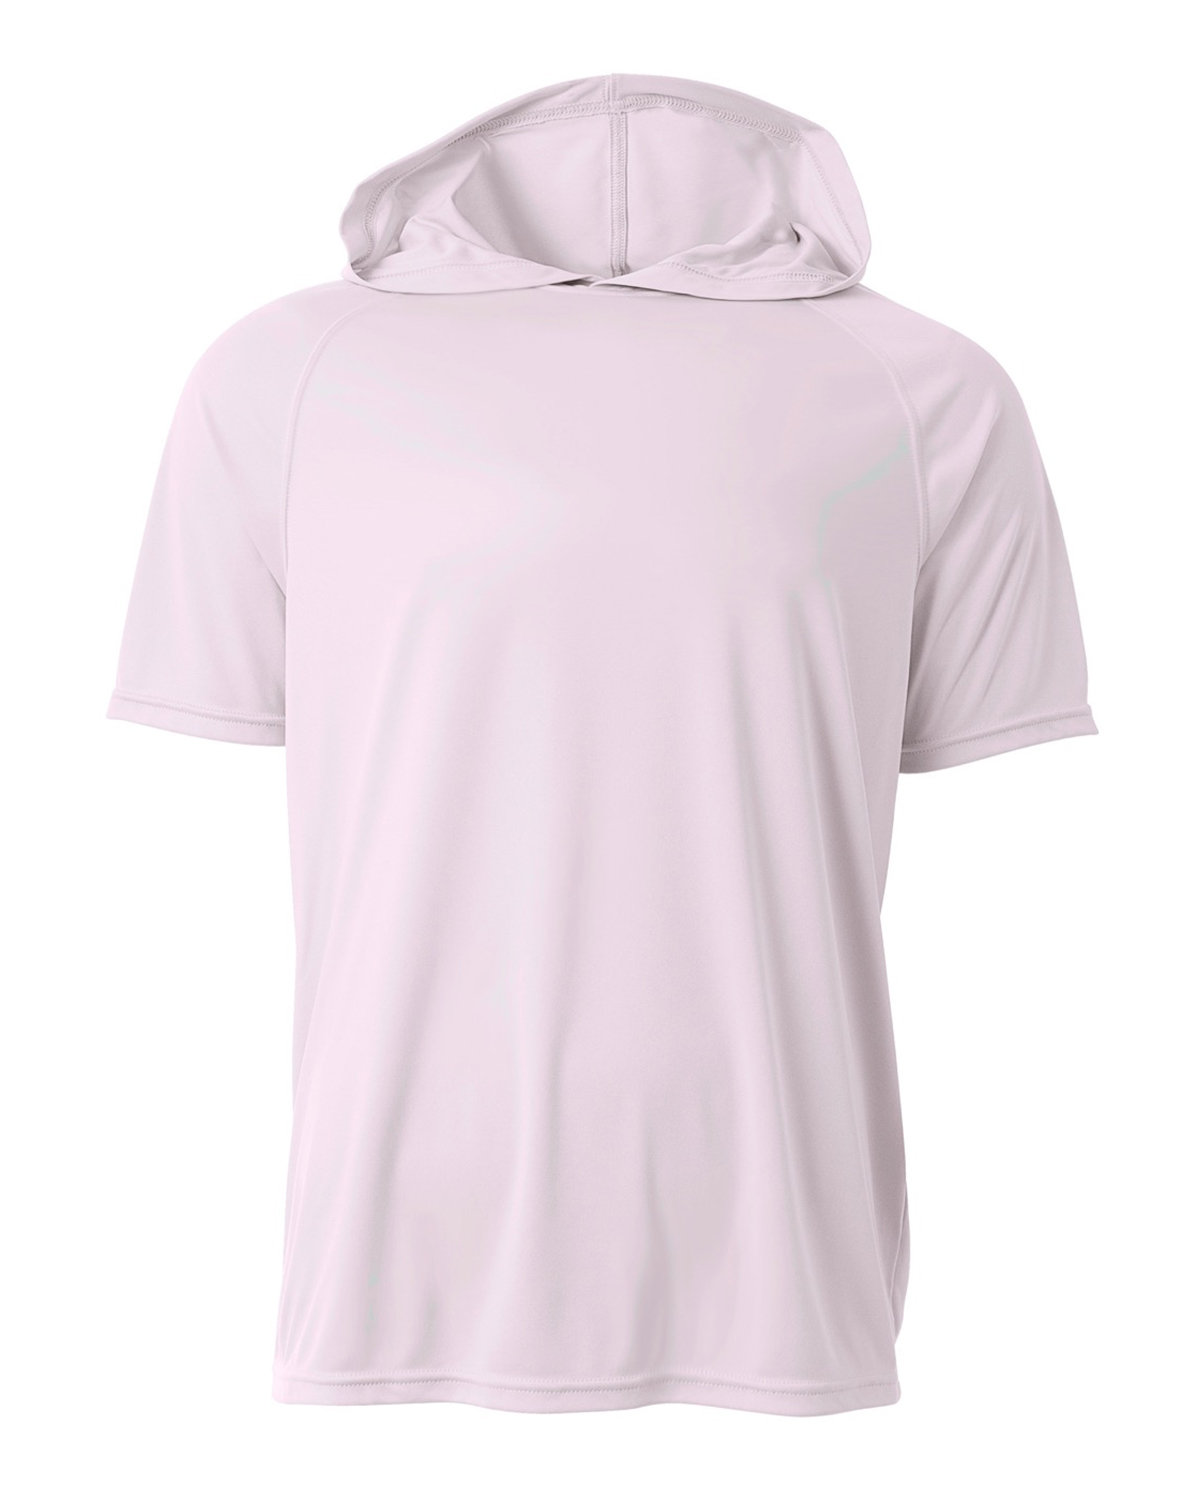 A4 Men's Cooling Performance Hooded T-shirt WHITE